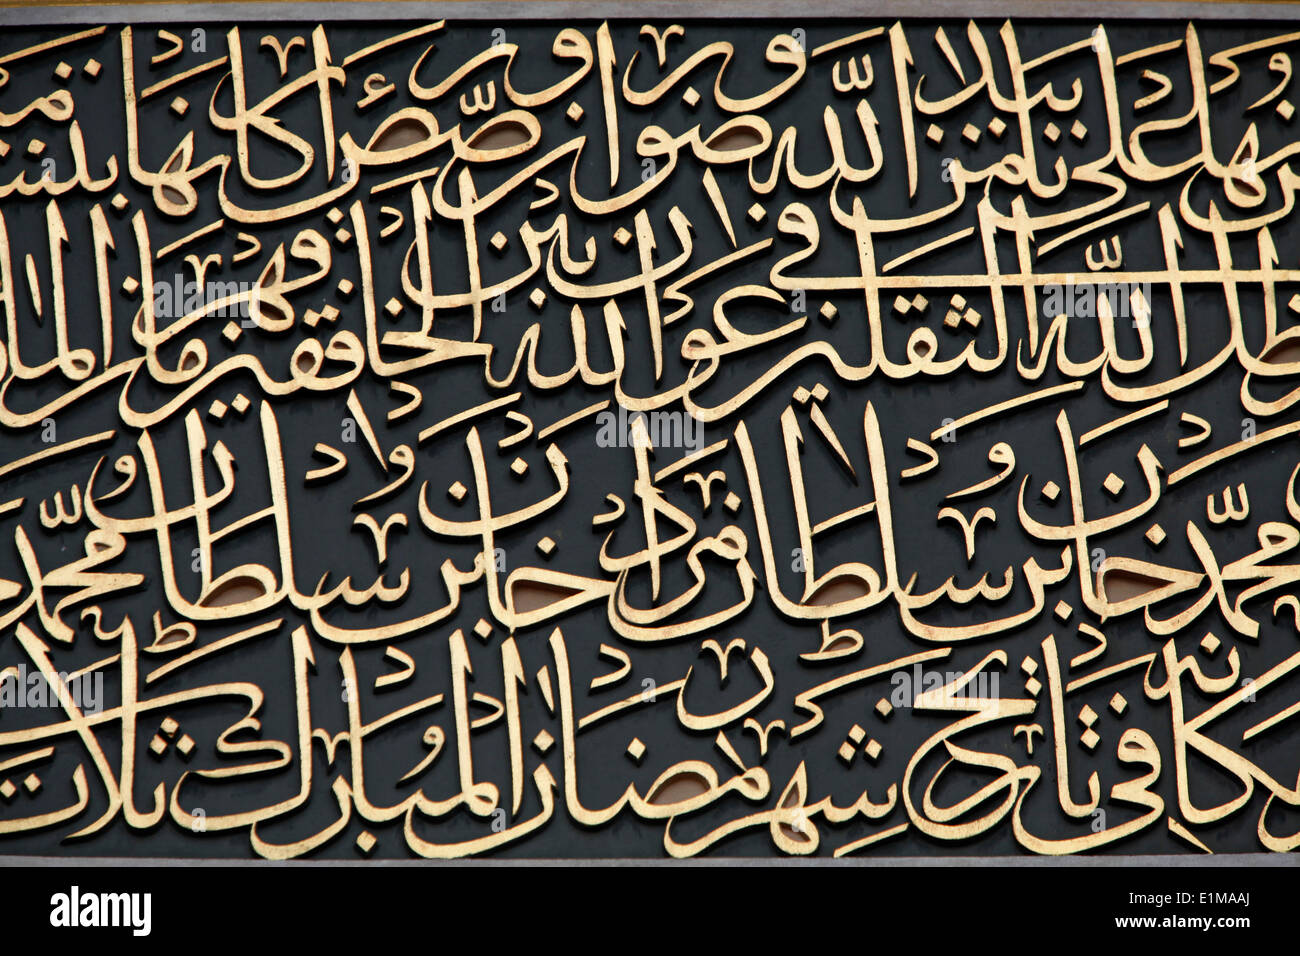 Sculpted islamic calligraphy stock photos sculpted islamic